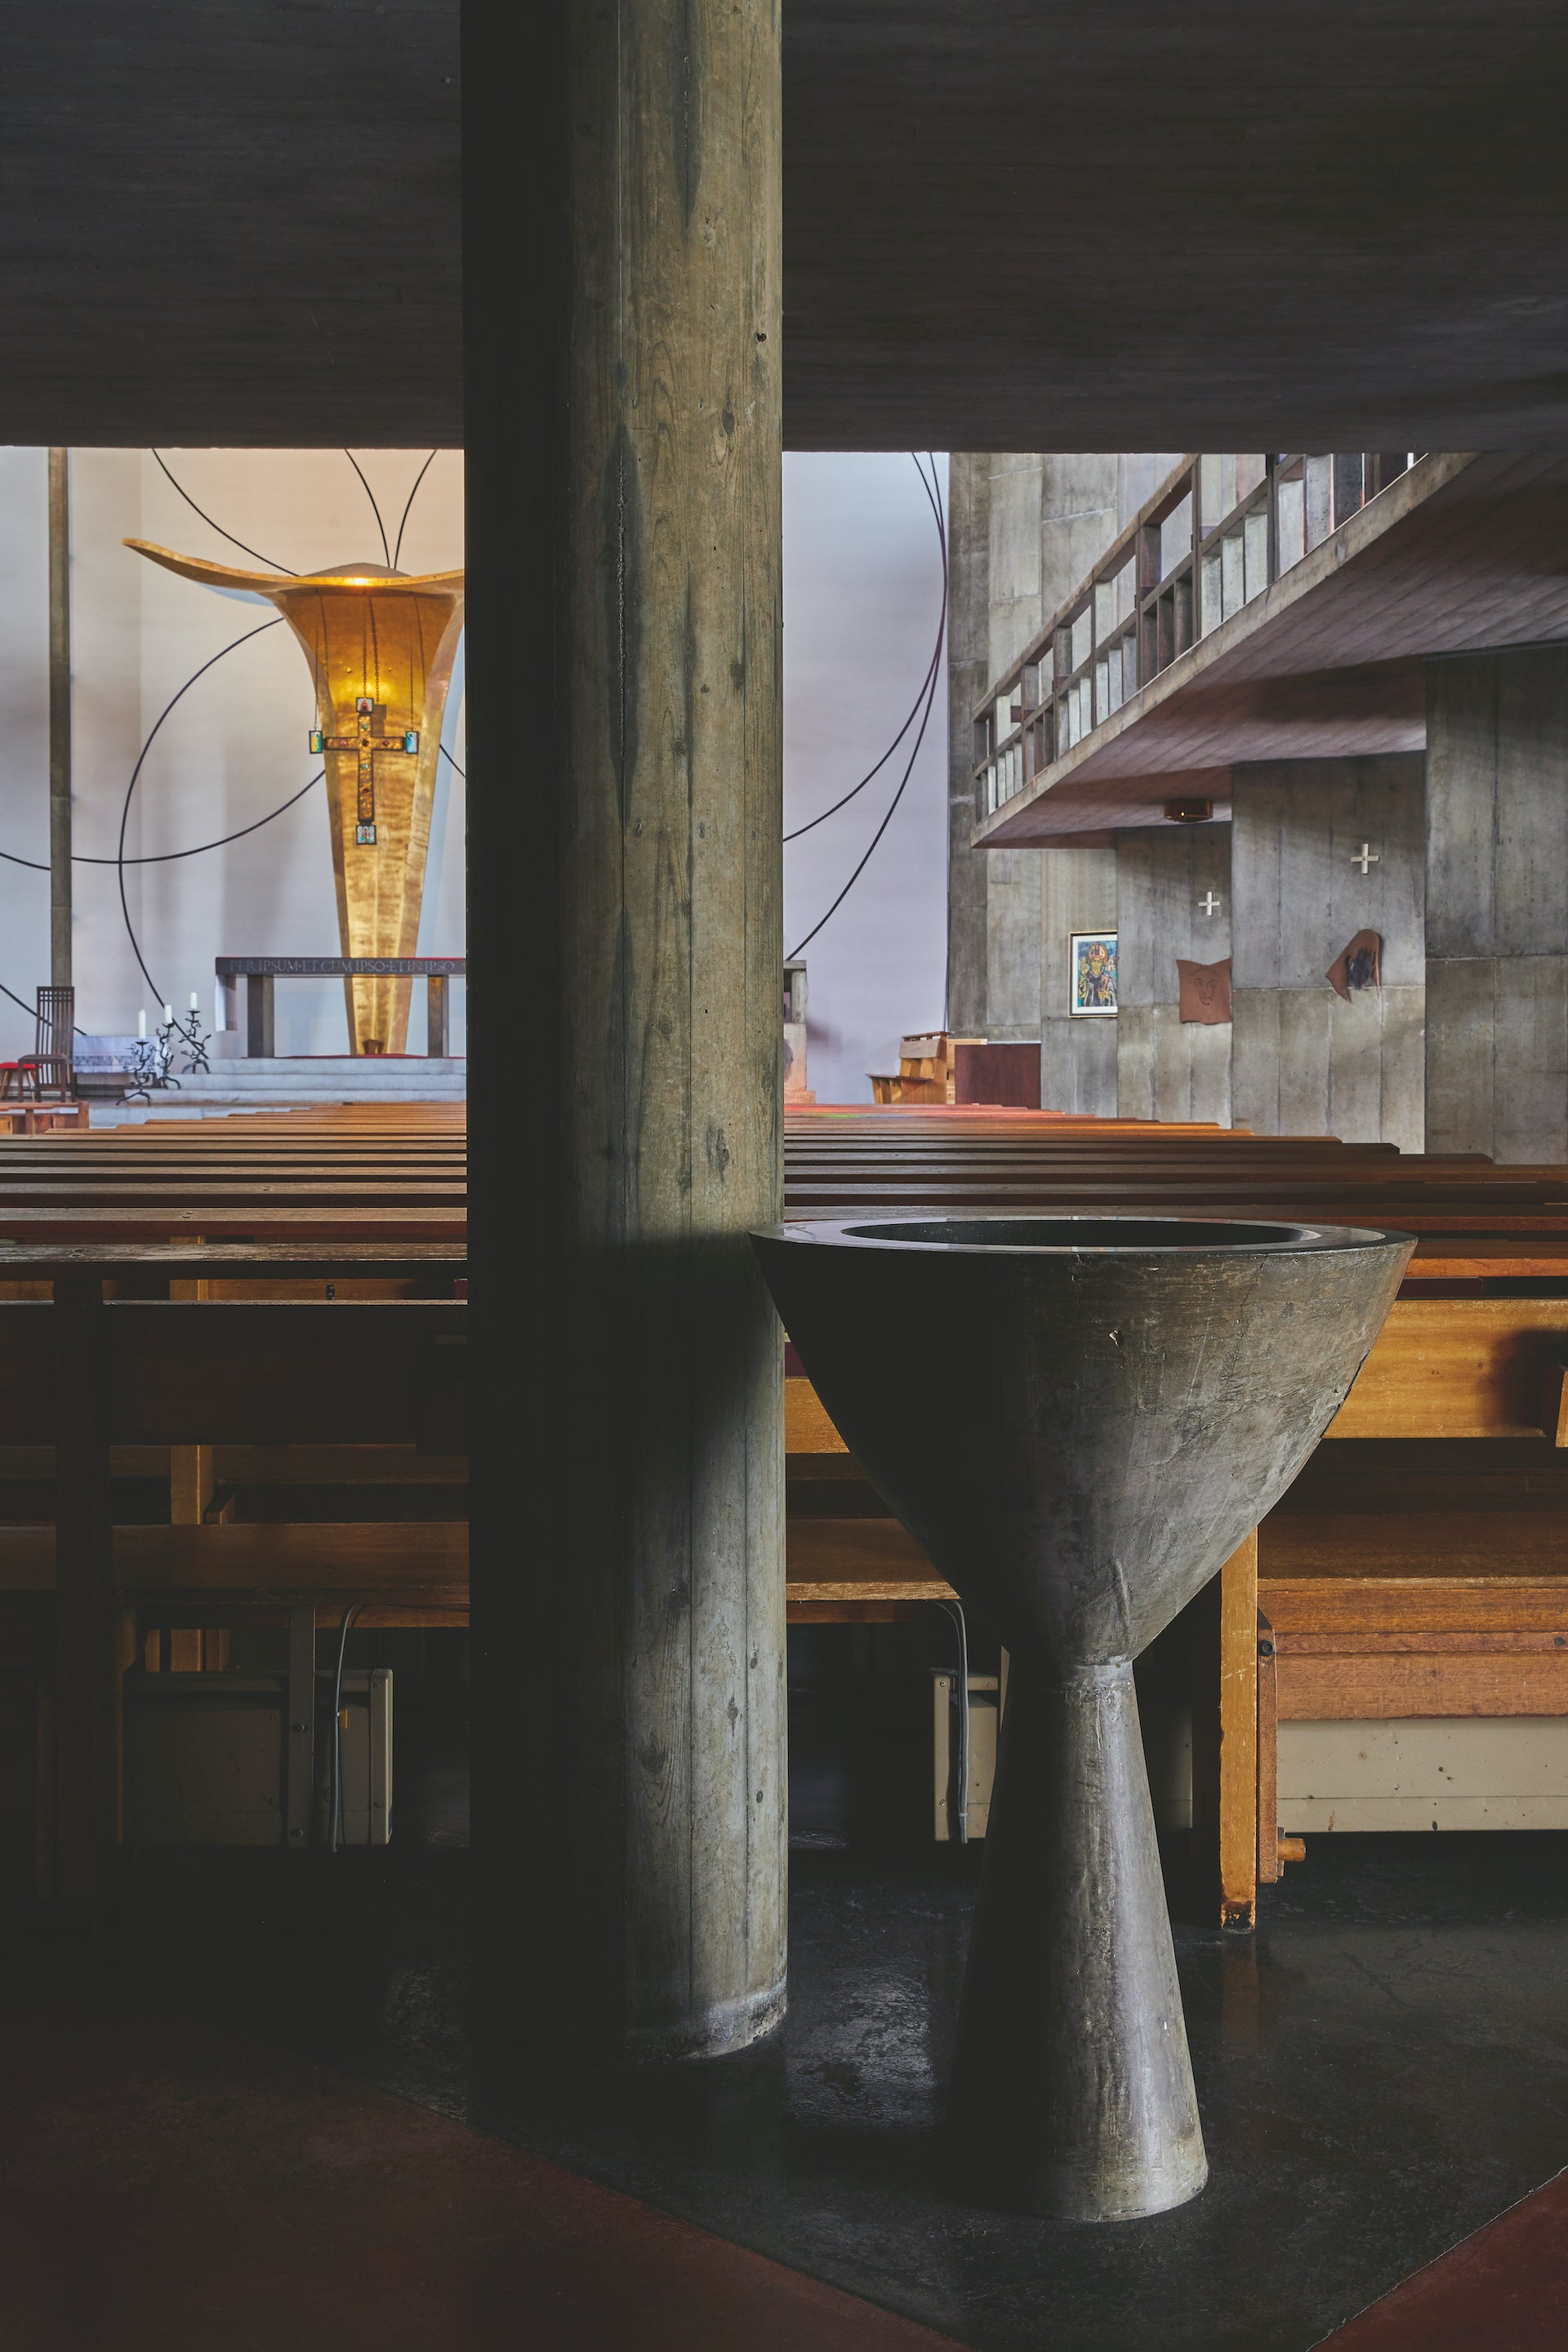 St. Anselm's Catholic Church, built between 1952 and 1956. Photos © Yoshihiro Makino